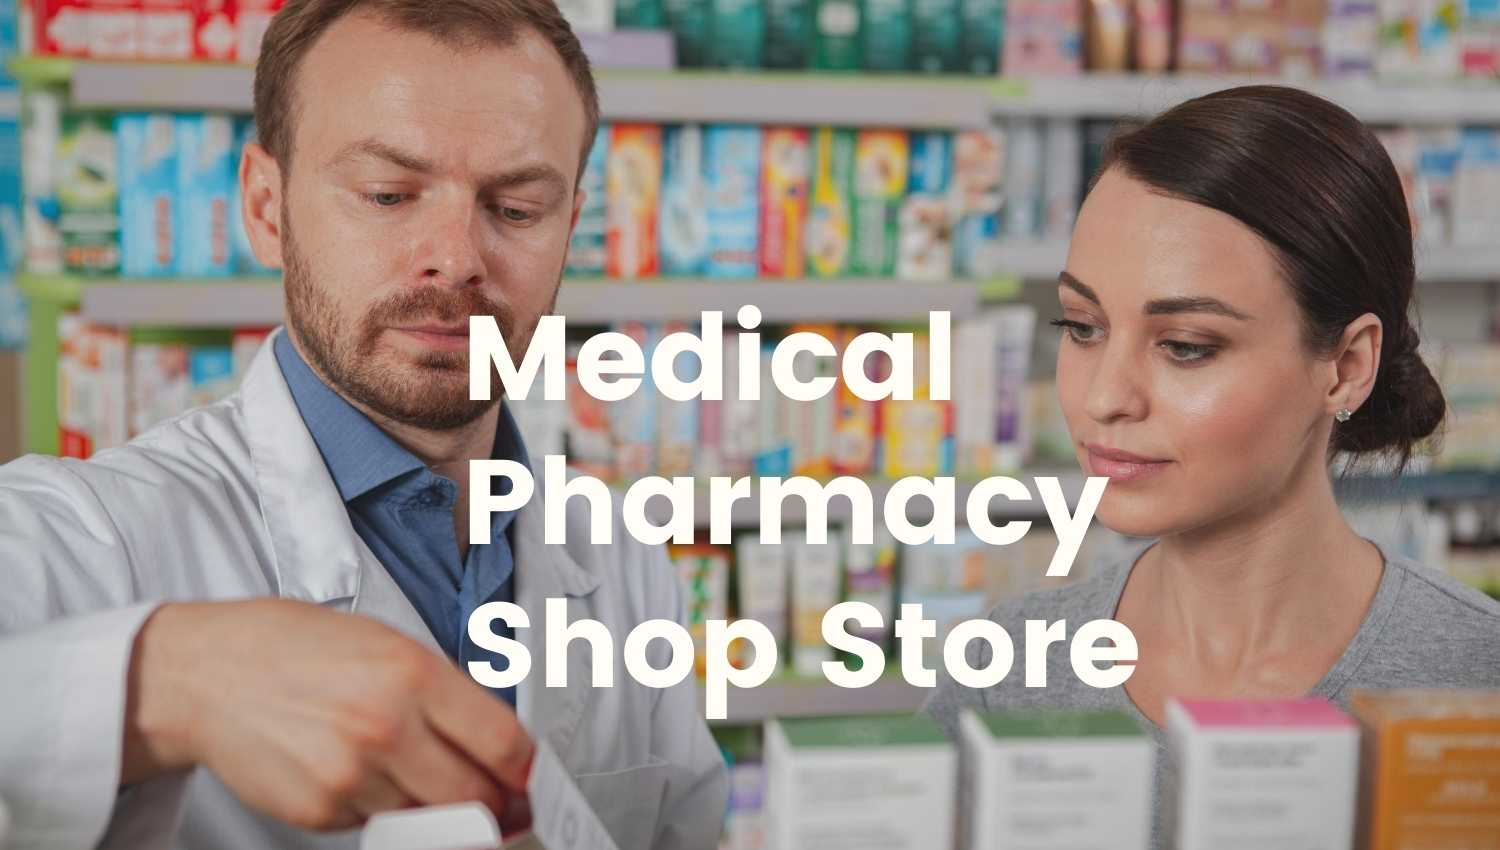 Medical Pharmacy Shop Business Project Report